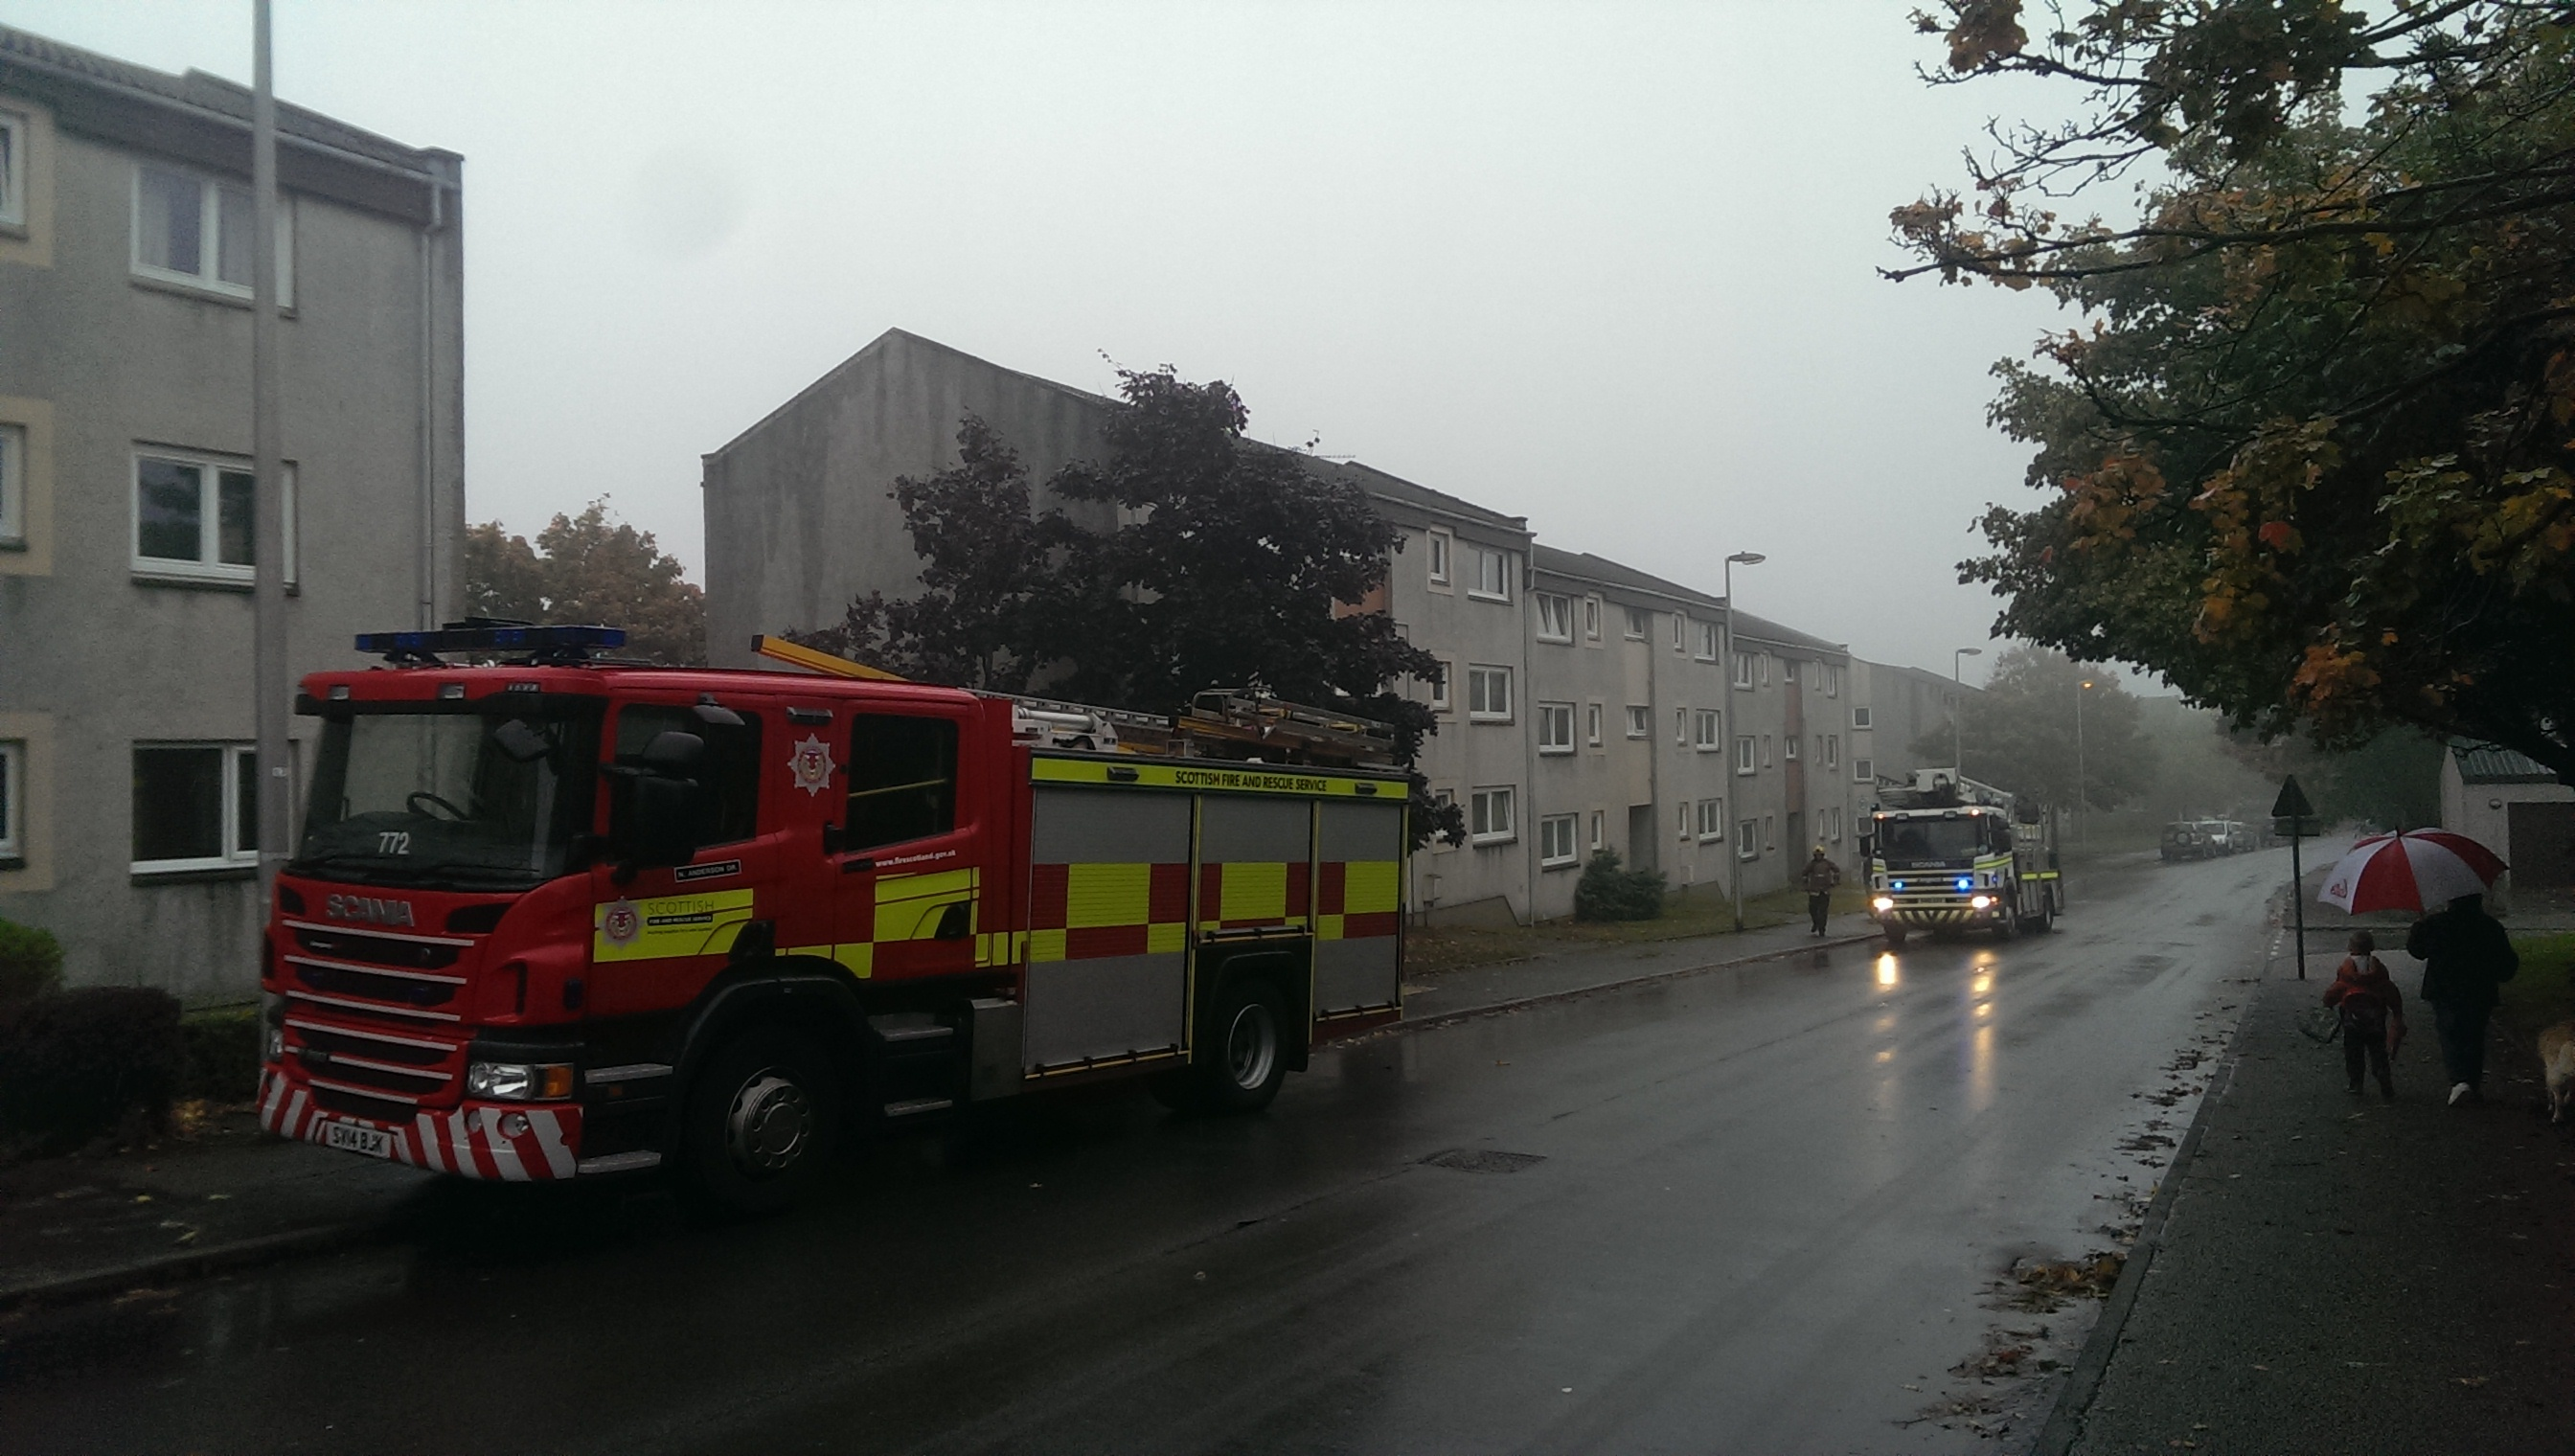 Firefighters are on the scene at Lewis Road